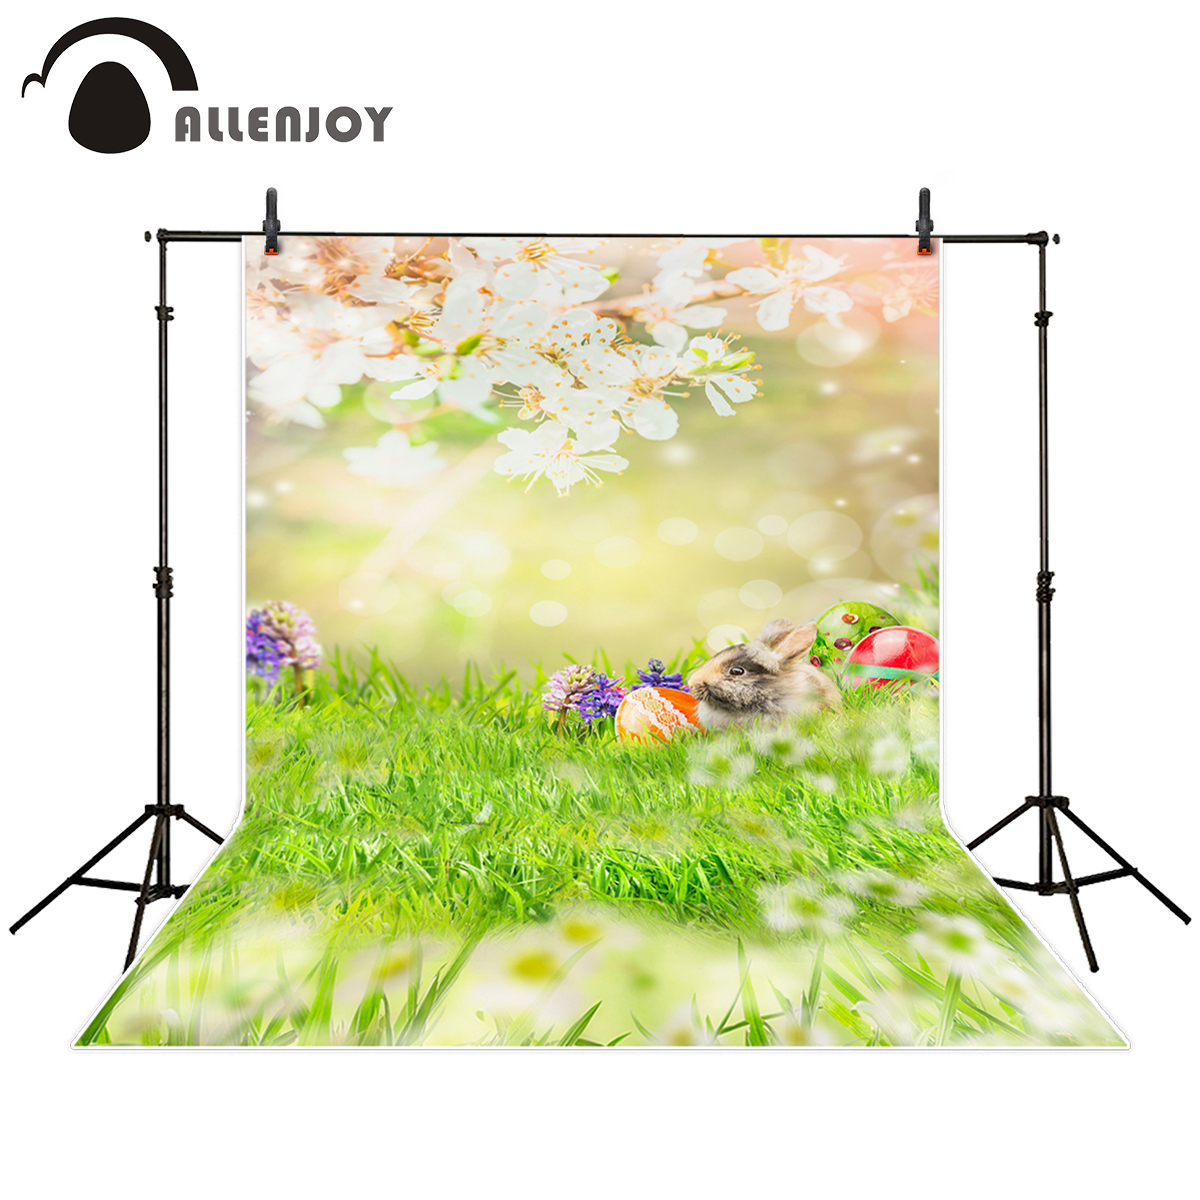 Allenjoy photography backdrop easter spring egg flower rabbit bokeh halo grass background photo studio photo prop custom allenjoy photography background blue red abstract christmas background golden stars glitter bokeh lights backdrop photo studio